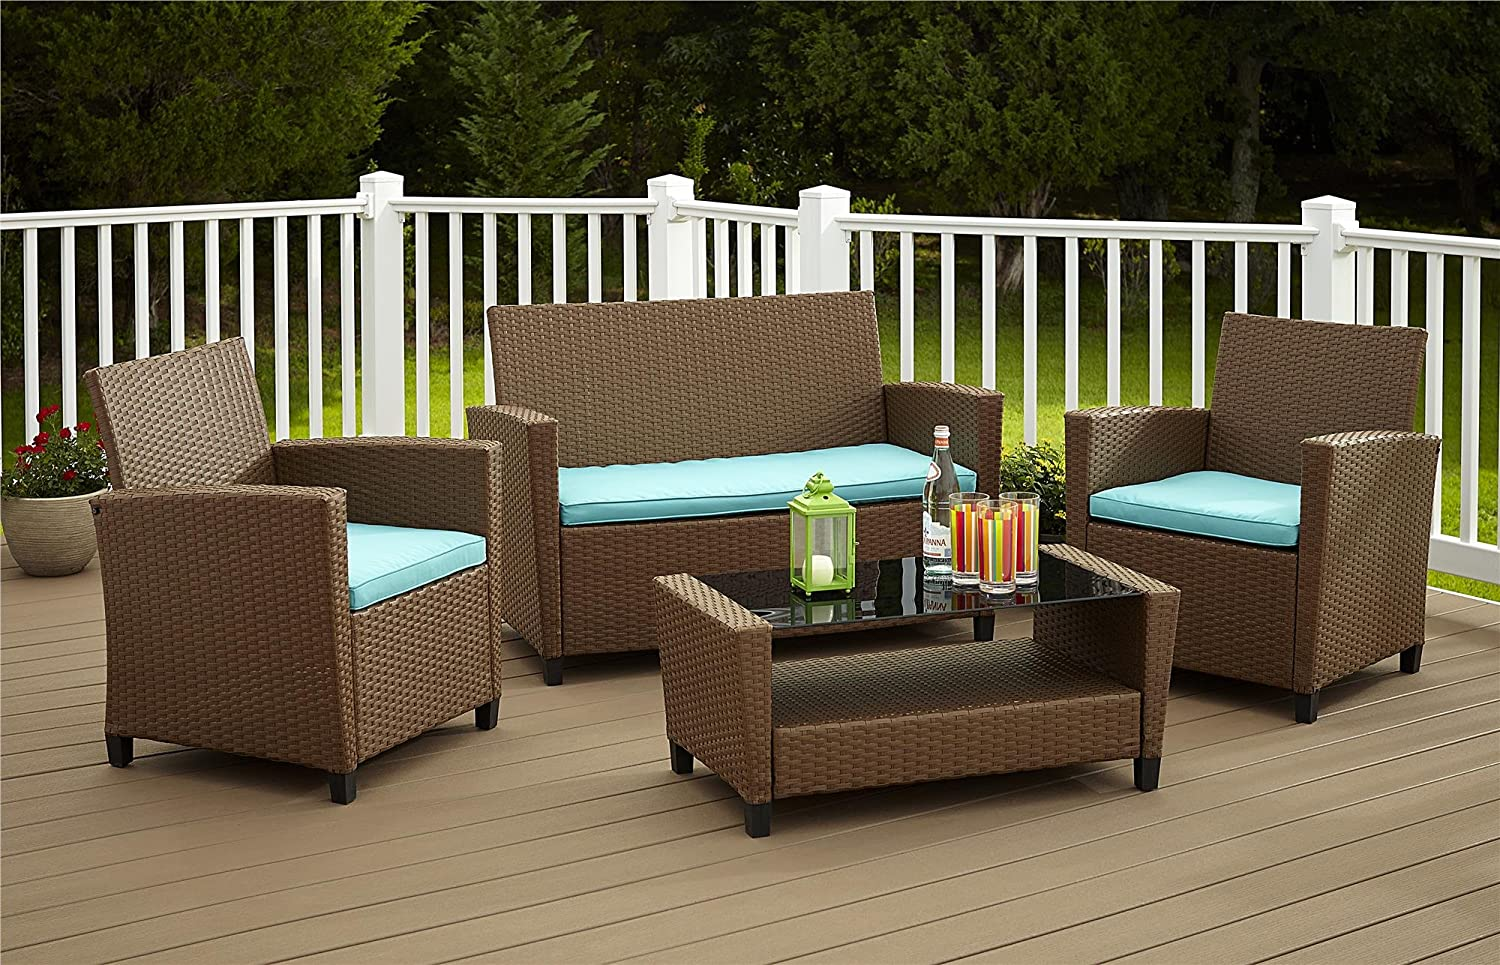 Amazon.com: Cosco Products 4 Piece Malmo Resin Wicker Patio Set   Brown  With Teal Cushions: Kitchen U0026 Dining